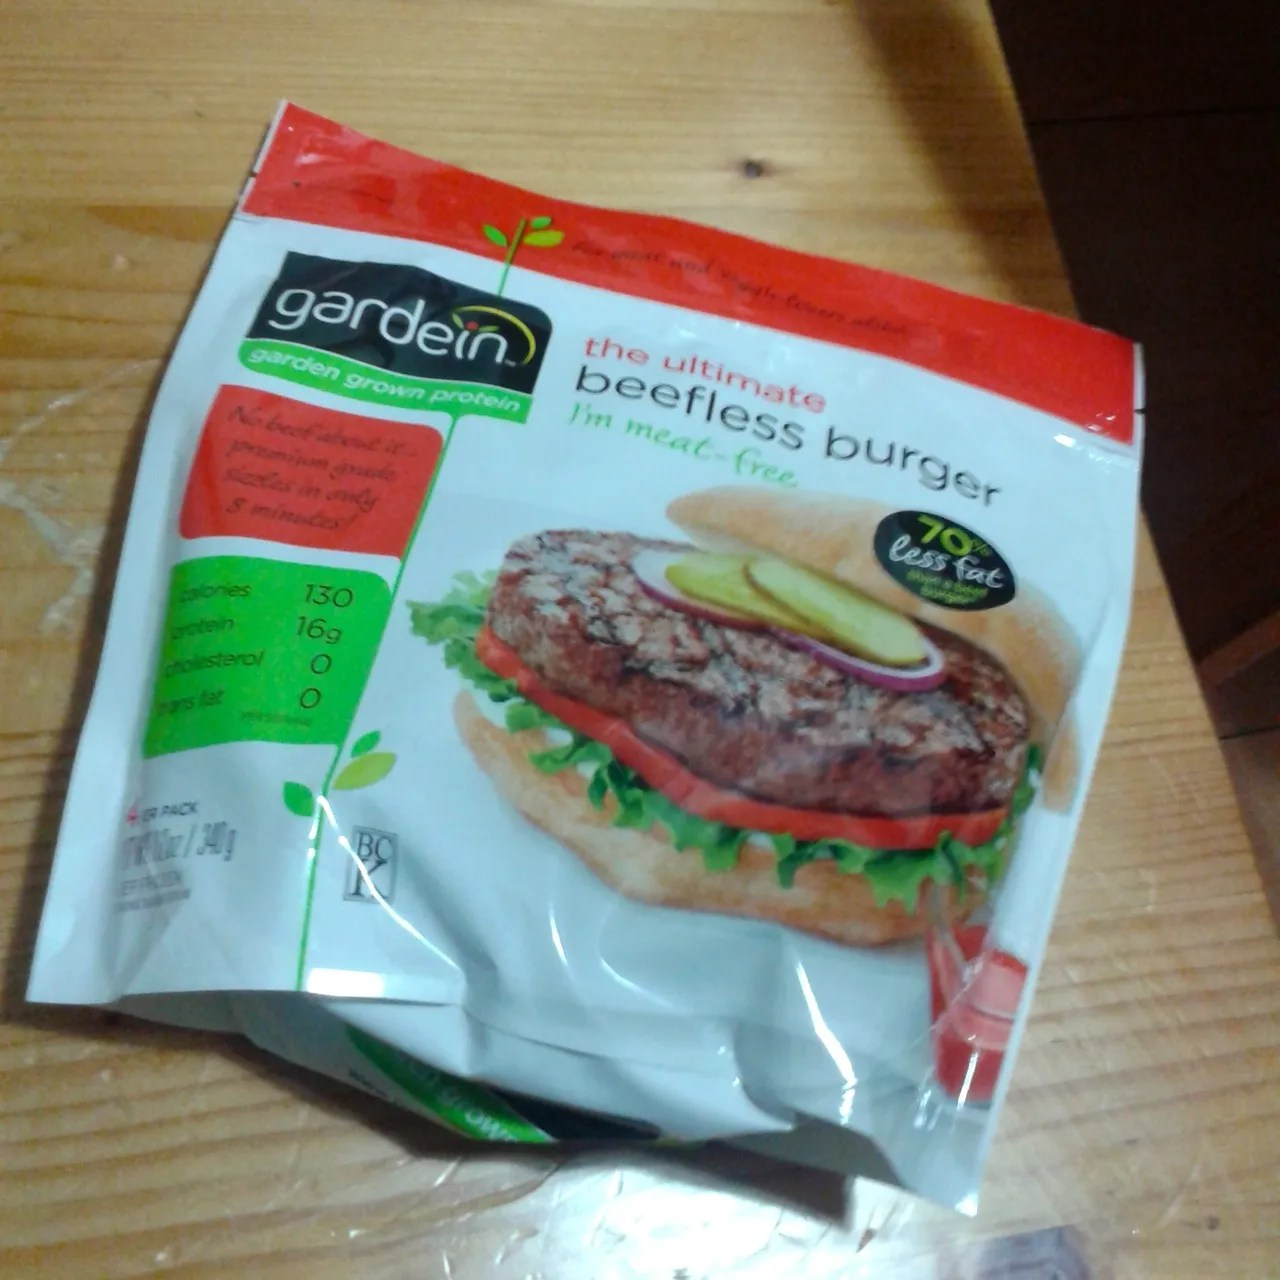 https://i1.wp.com/fatgayvegan.com/wp-content/uploads/2014/10/gardein-beefless-burgers.jpg?fit=1280%2C1280